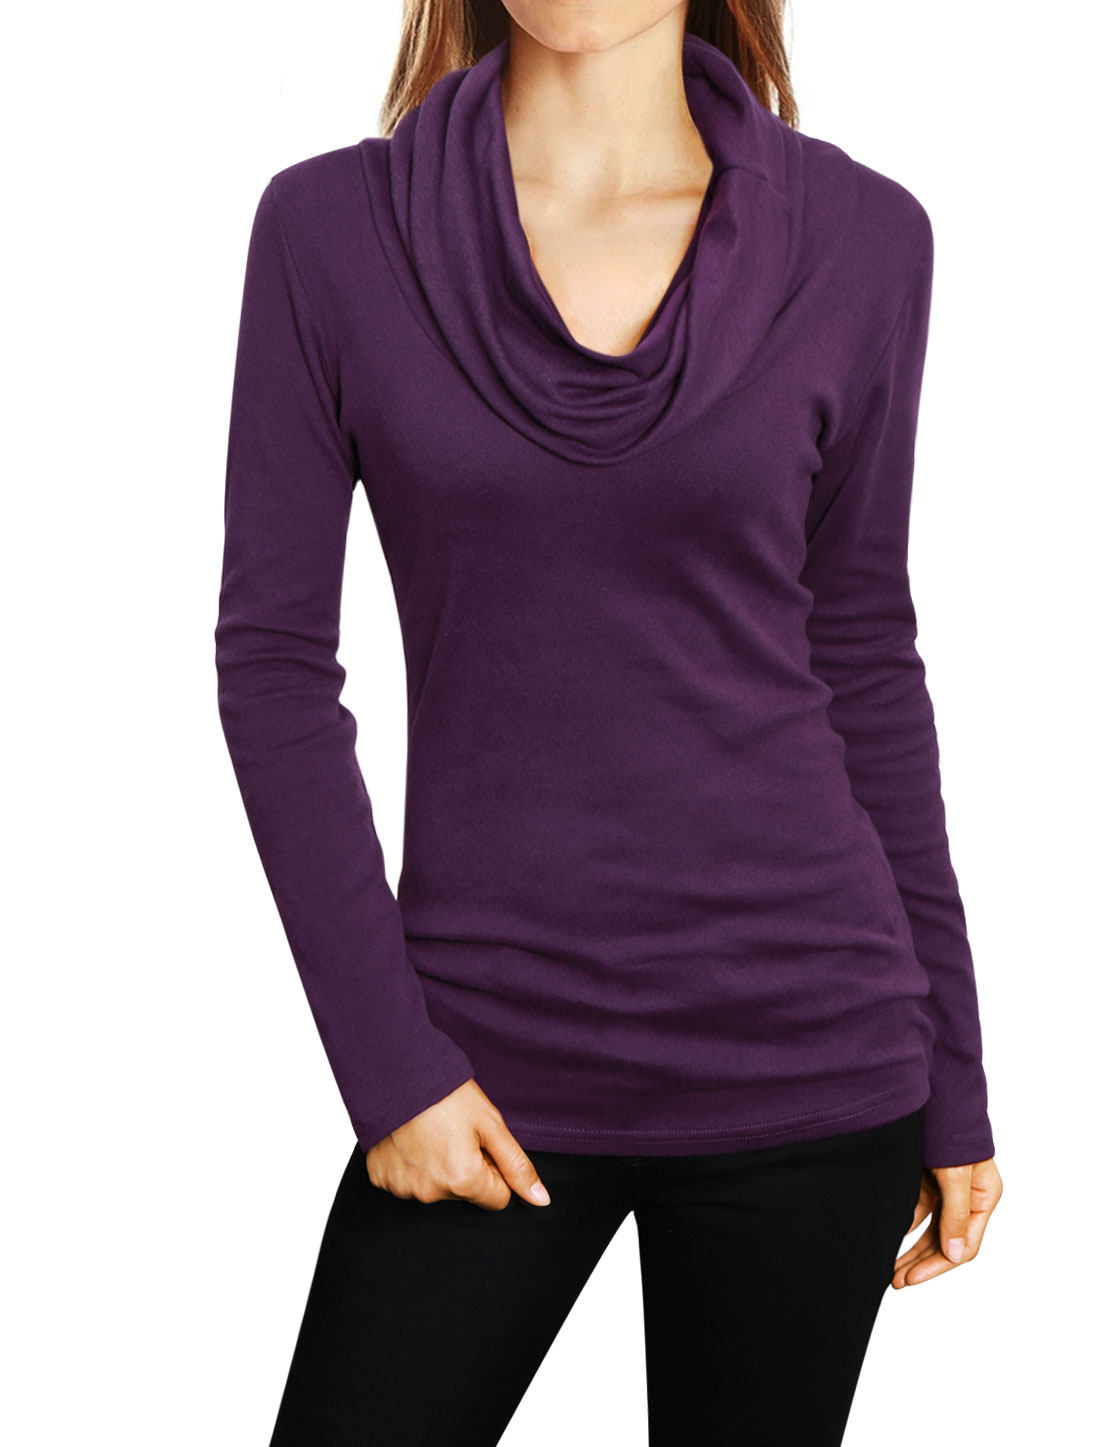 Ladies Cowl Neck Long Sleeves Slim Fit Casual Shirts Purple S